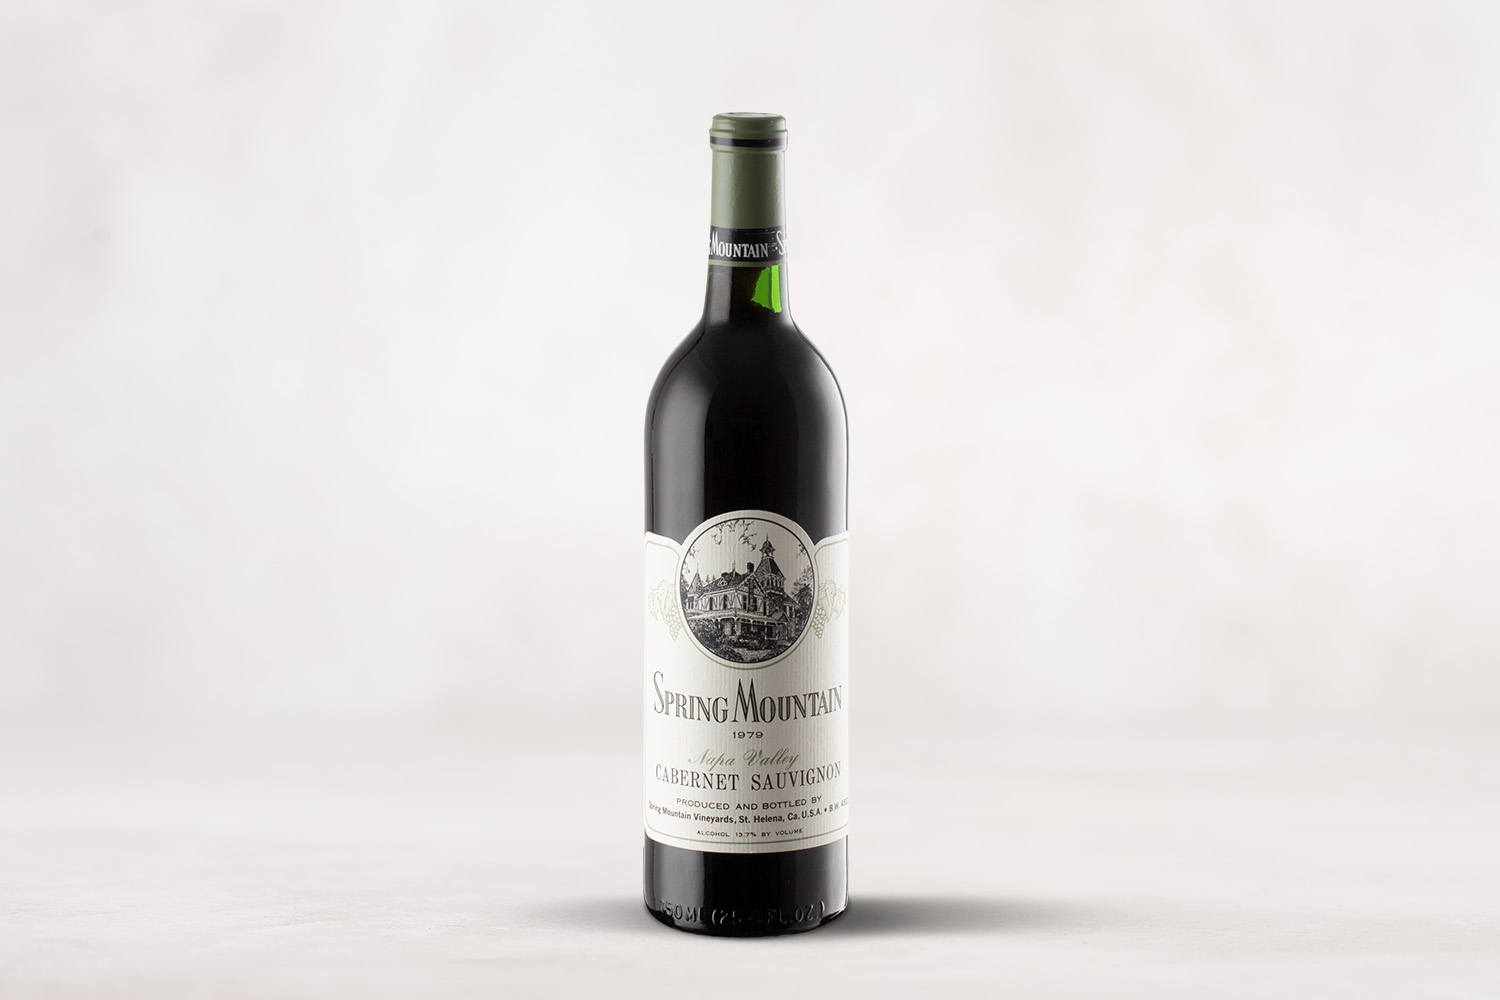 Spring Mountain Vineyard, Estate Cabernet Sauvignon Napa Valley, California 1979 - SommSelect